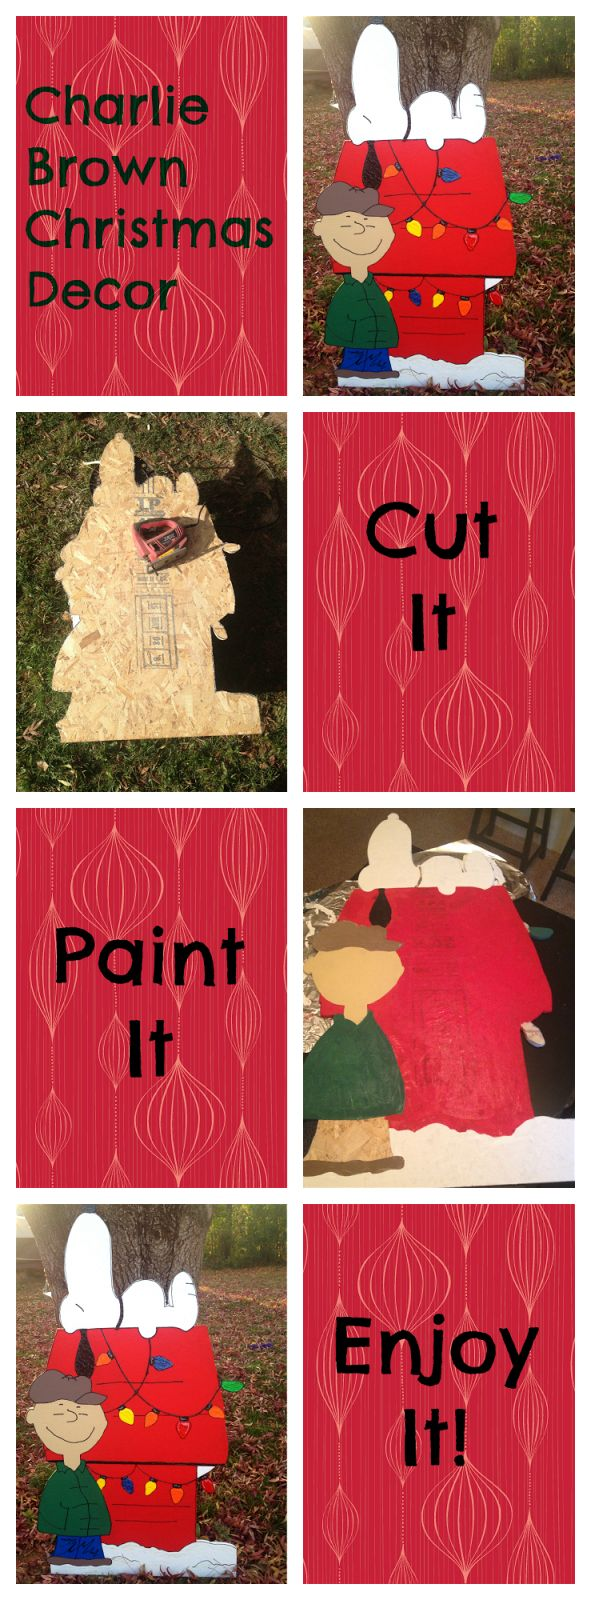 easy diy peanuts charlie brown christmas decorations just cut it paint it and - Charlie Brown Christmas Decorations